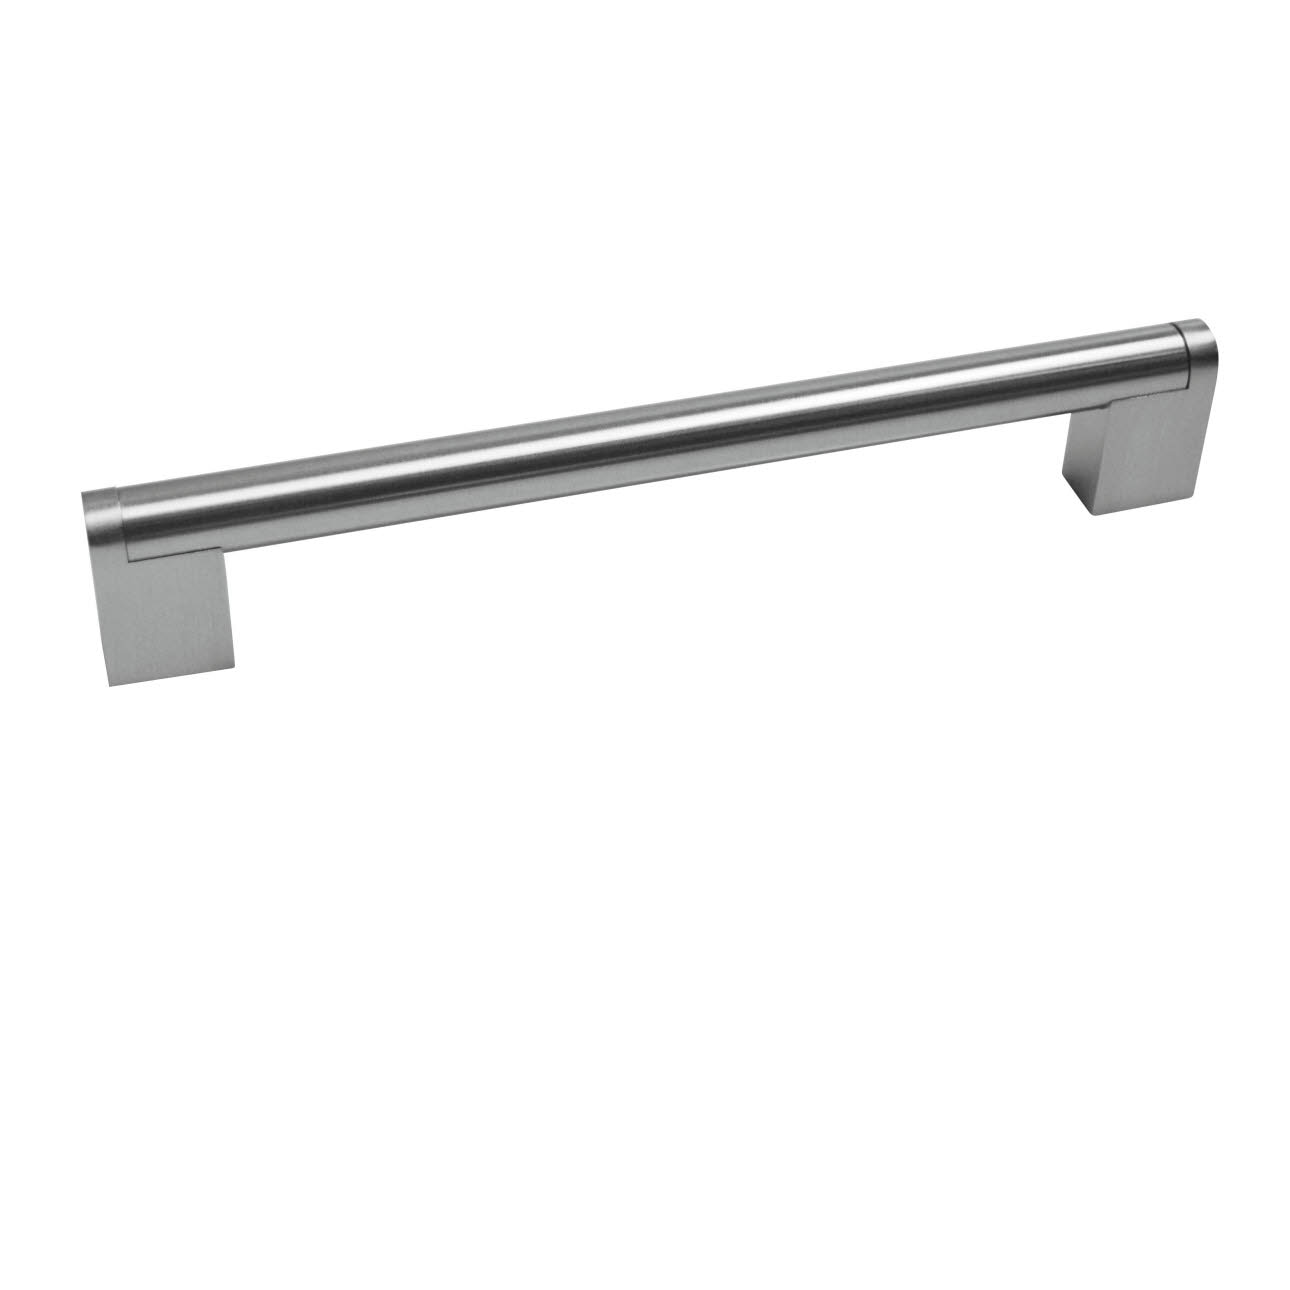 Metal long bar stainless steel coloured